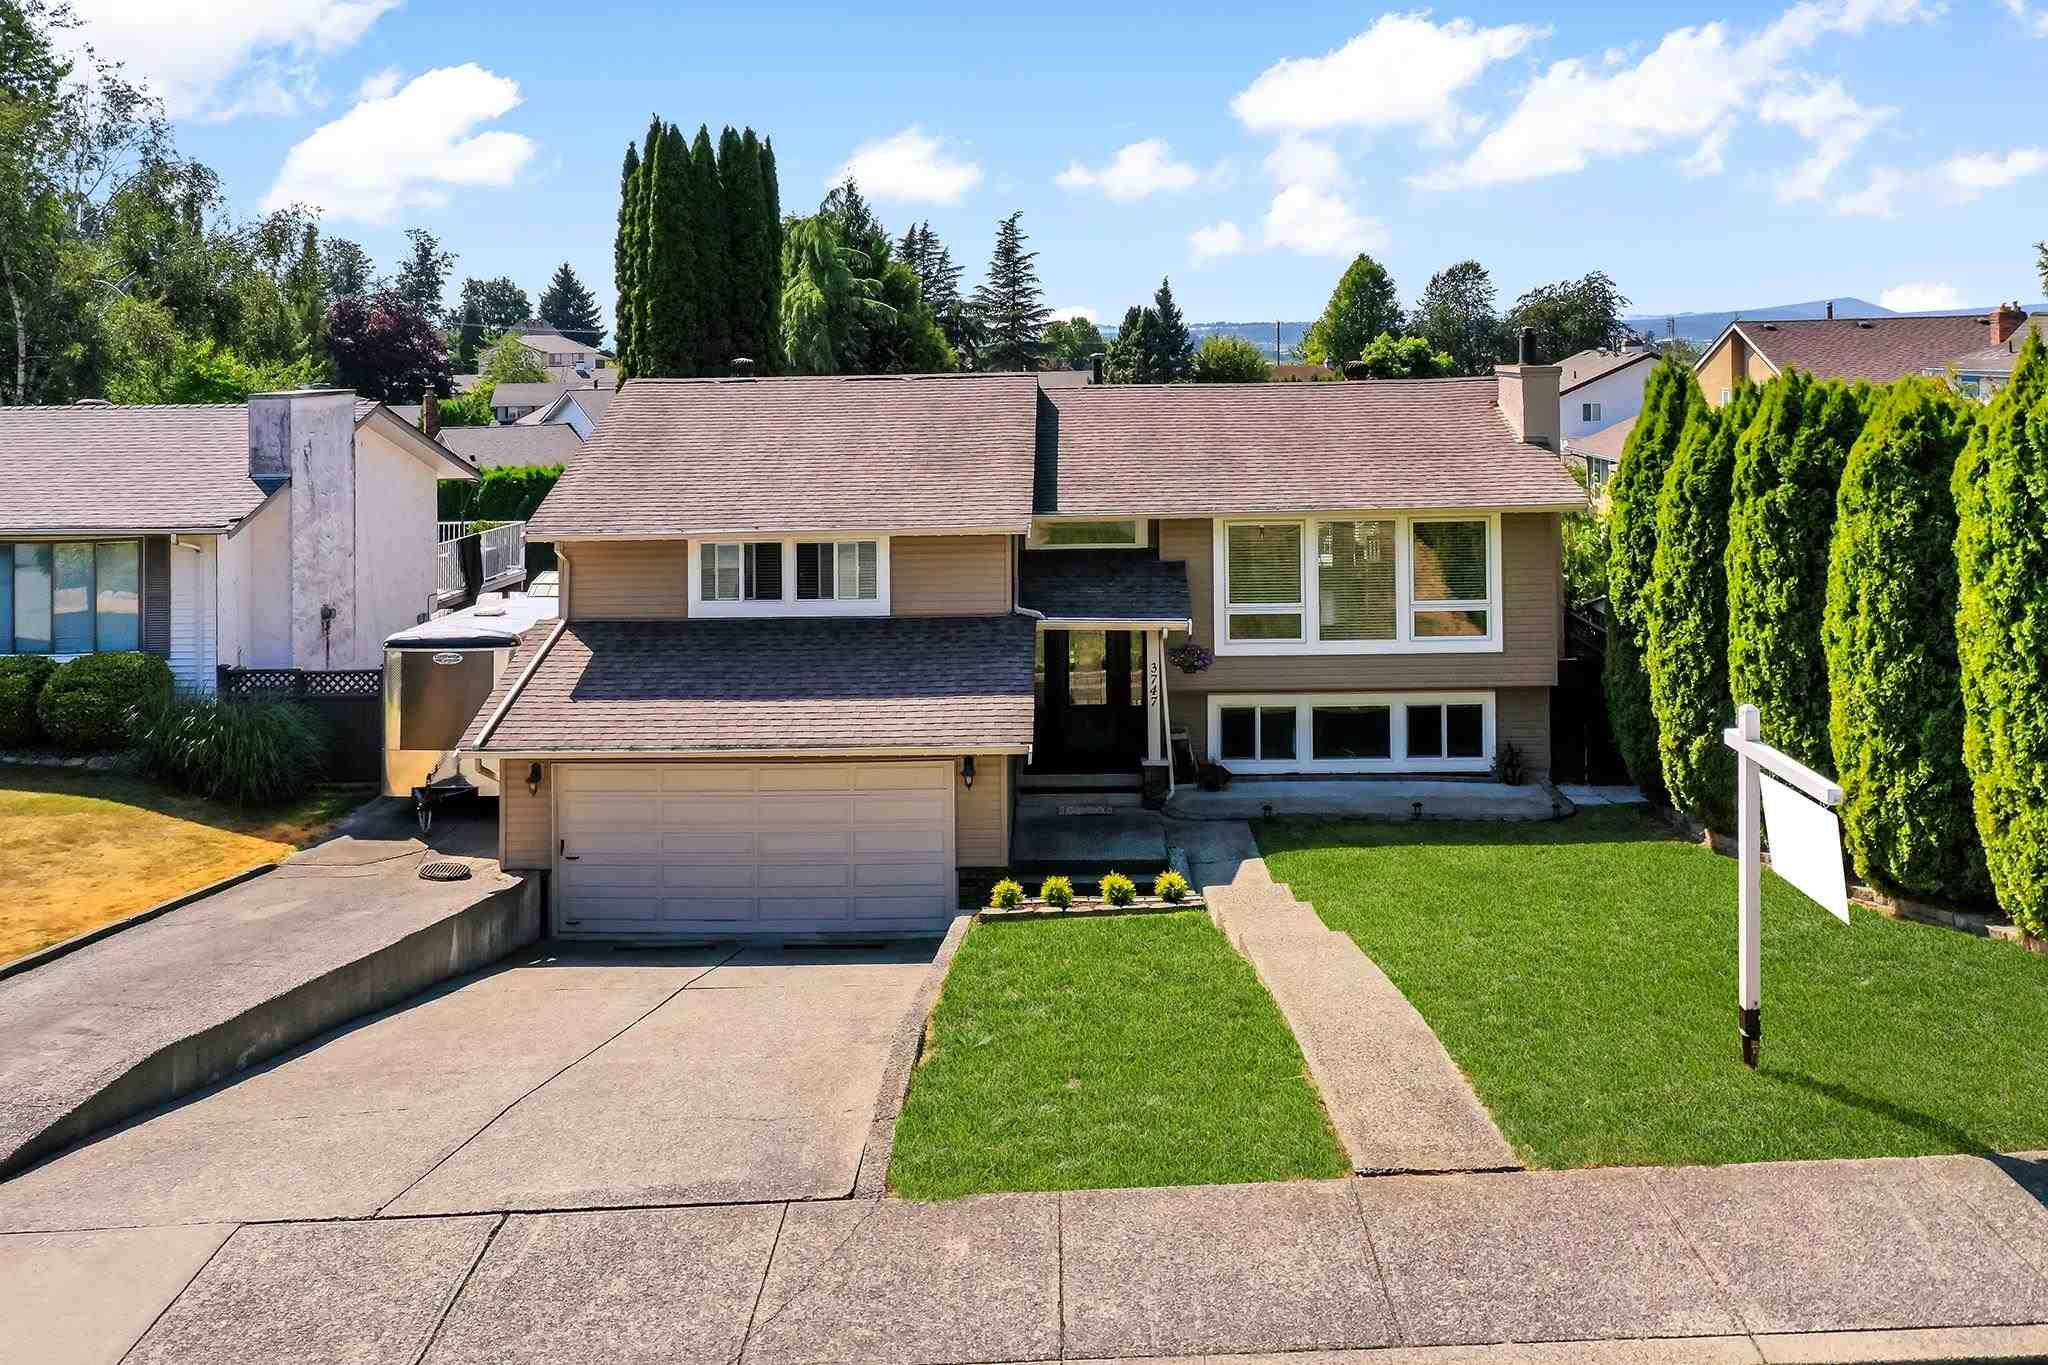 """Main Photo: 3747 SANDY HILL Crescent in Abbotsford: Abbotsford East House for sale in """"Sandy Hill"""" : MLS®# R2601199"""